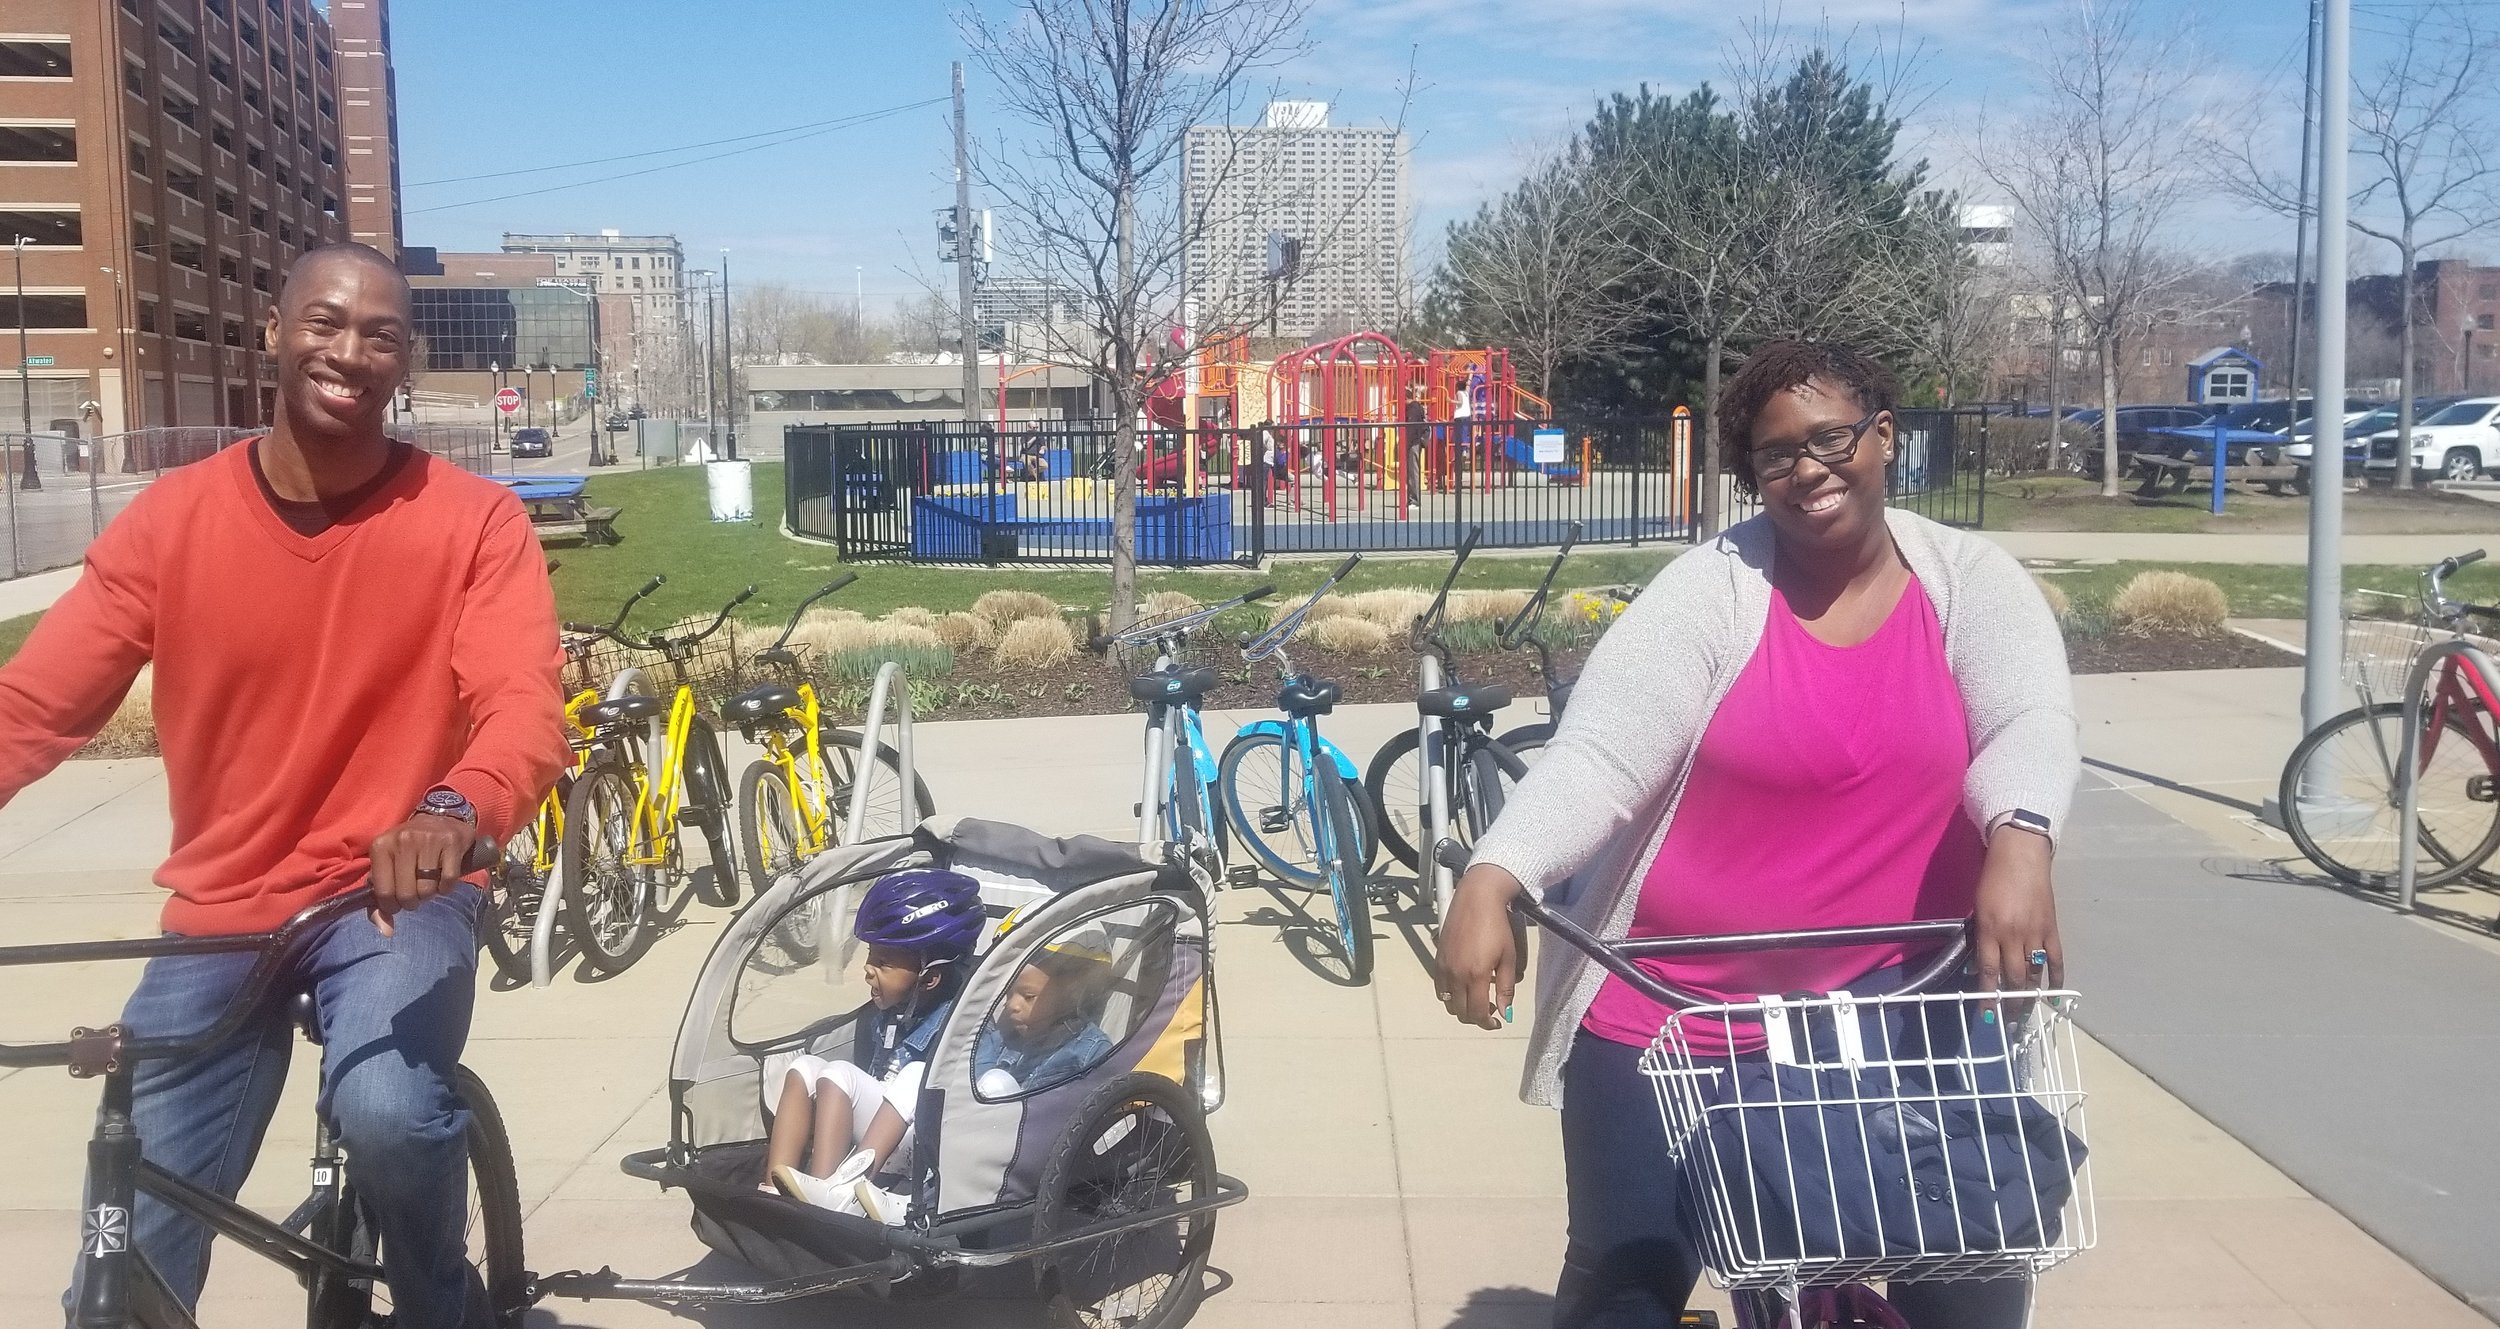 The whole family can experience the Riverwalk and Dequindre Cut with rentals from Wheelhouse Detroit  Now Open Friday, Saturday, & Sunday...Open 7 Days a Week Beginning May 10.